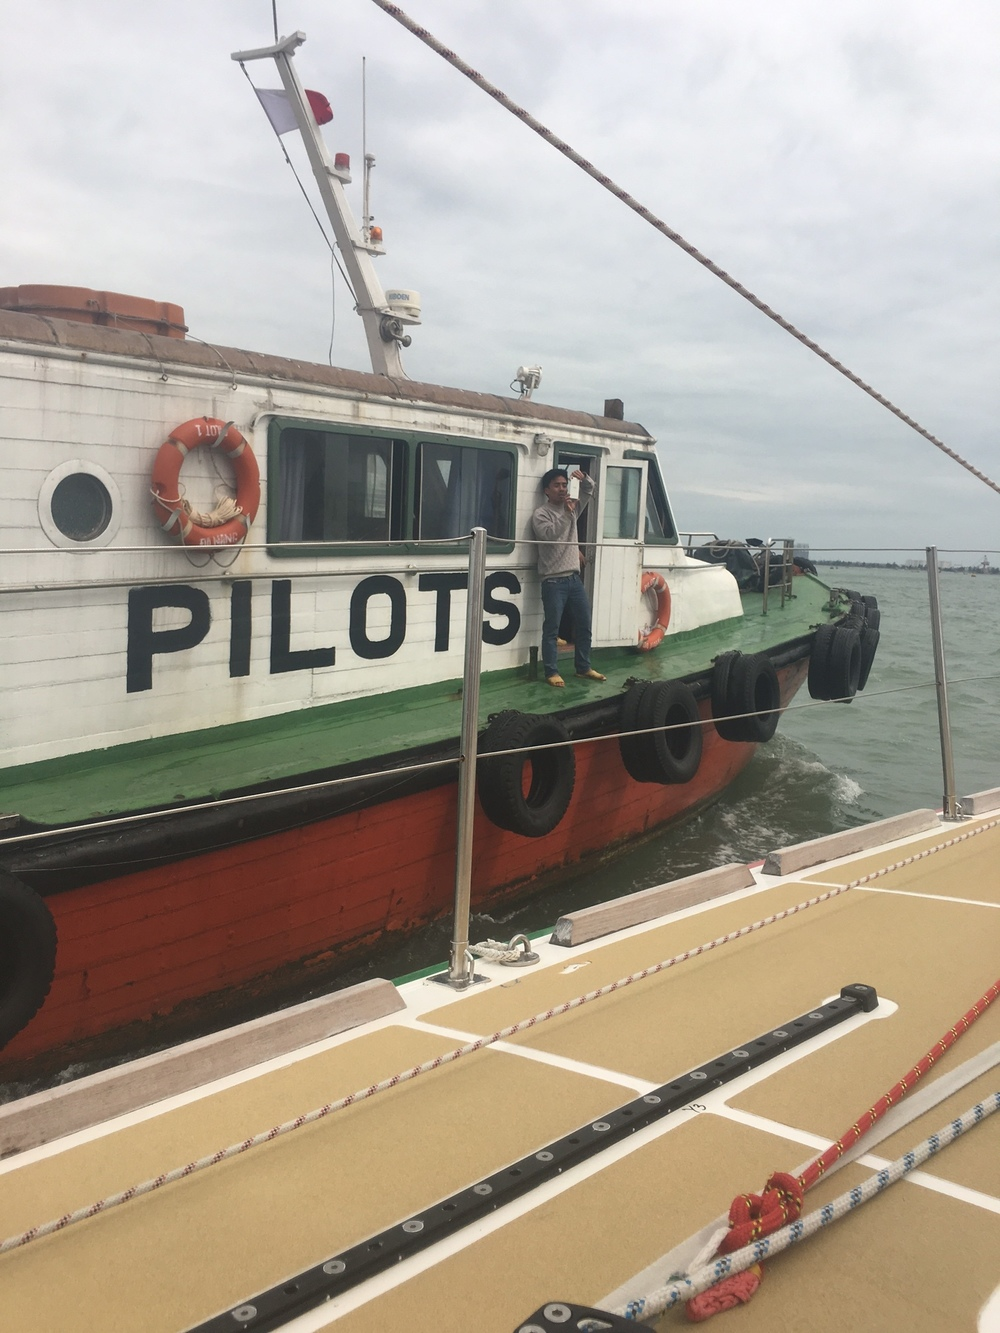 Pilot will board- DaNang